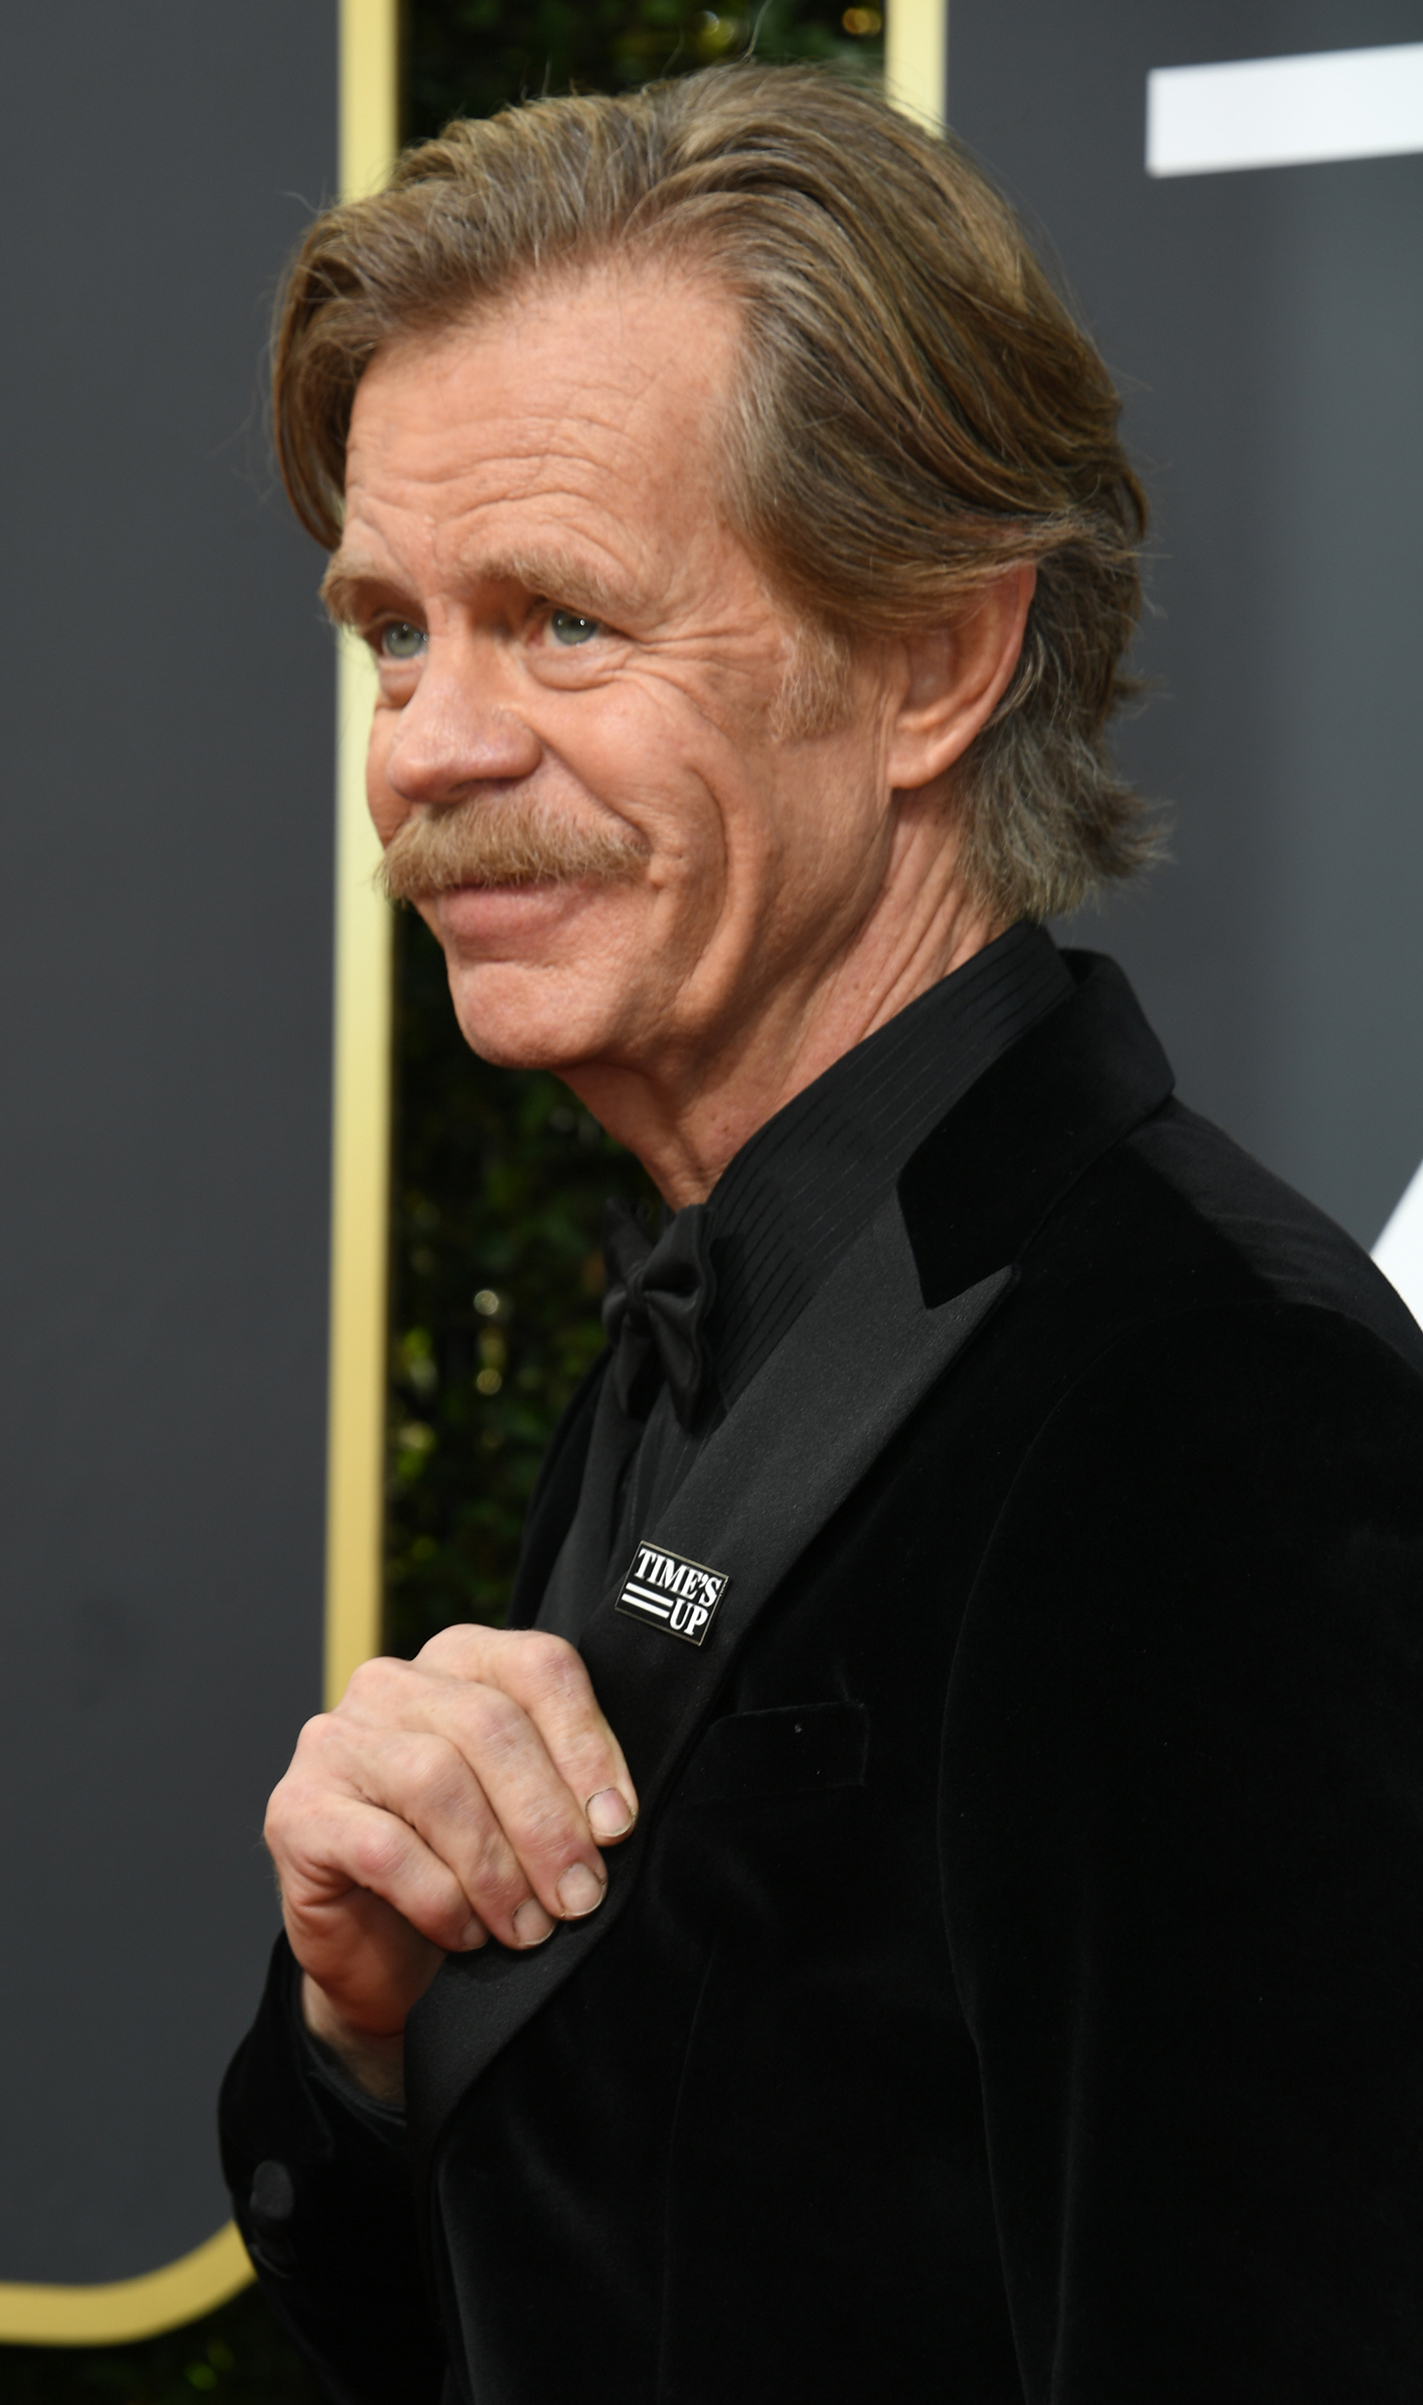 Actor William H. Macy arrives for the 75th Golden Globe Awards on January 7, 2018, in Beverly Hills, California.